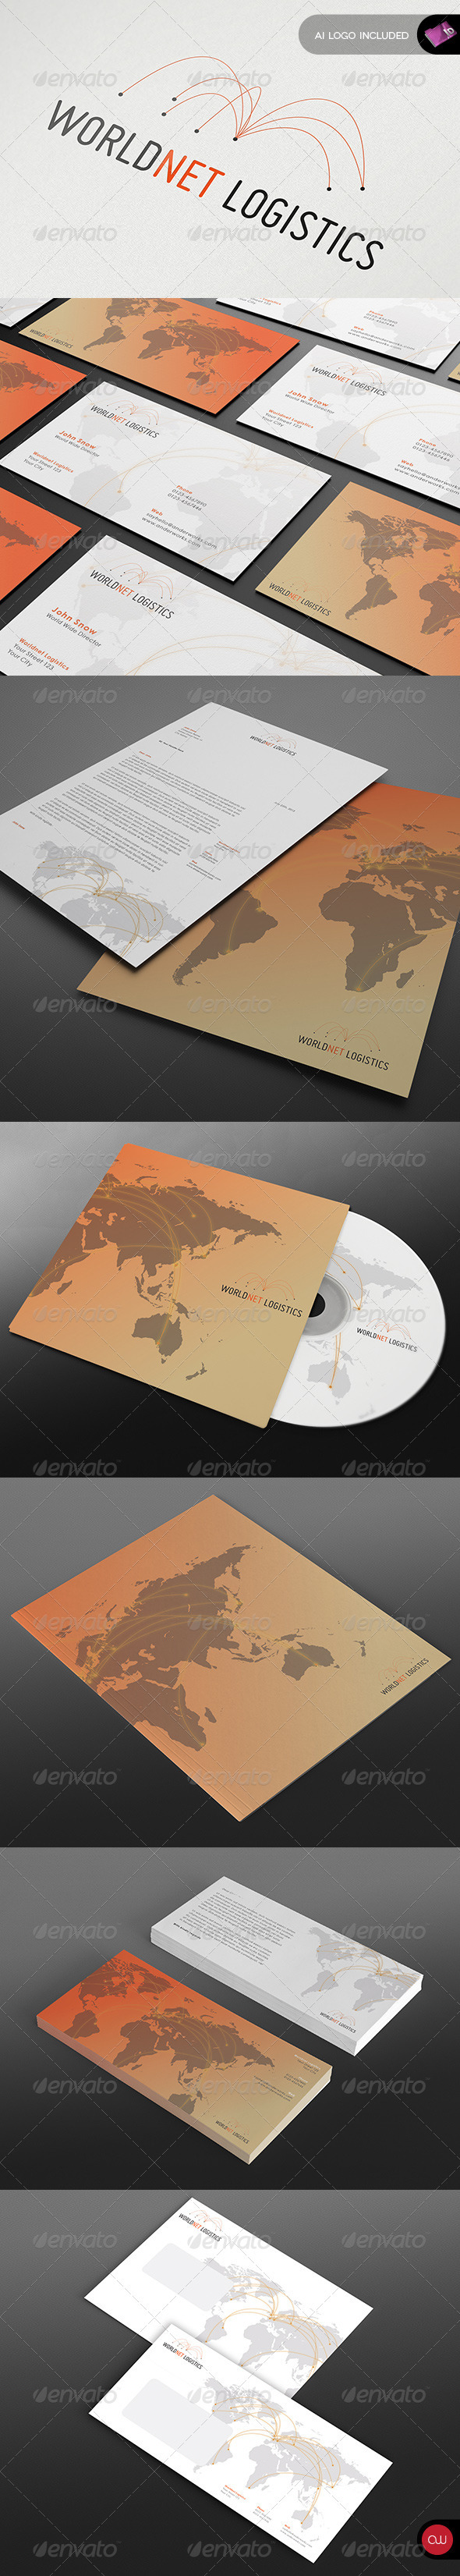 Stationery & Identity - World Net Logistics - Stationery Print Templates